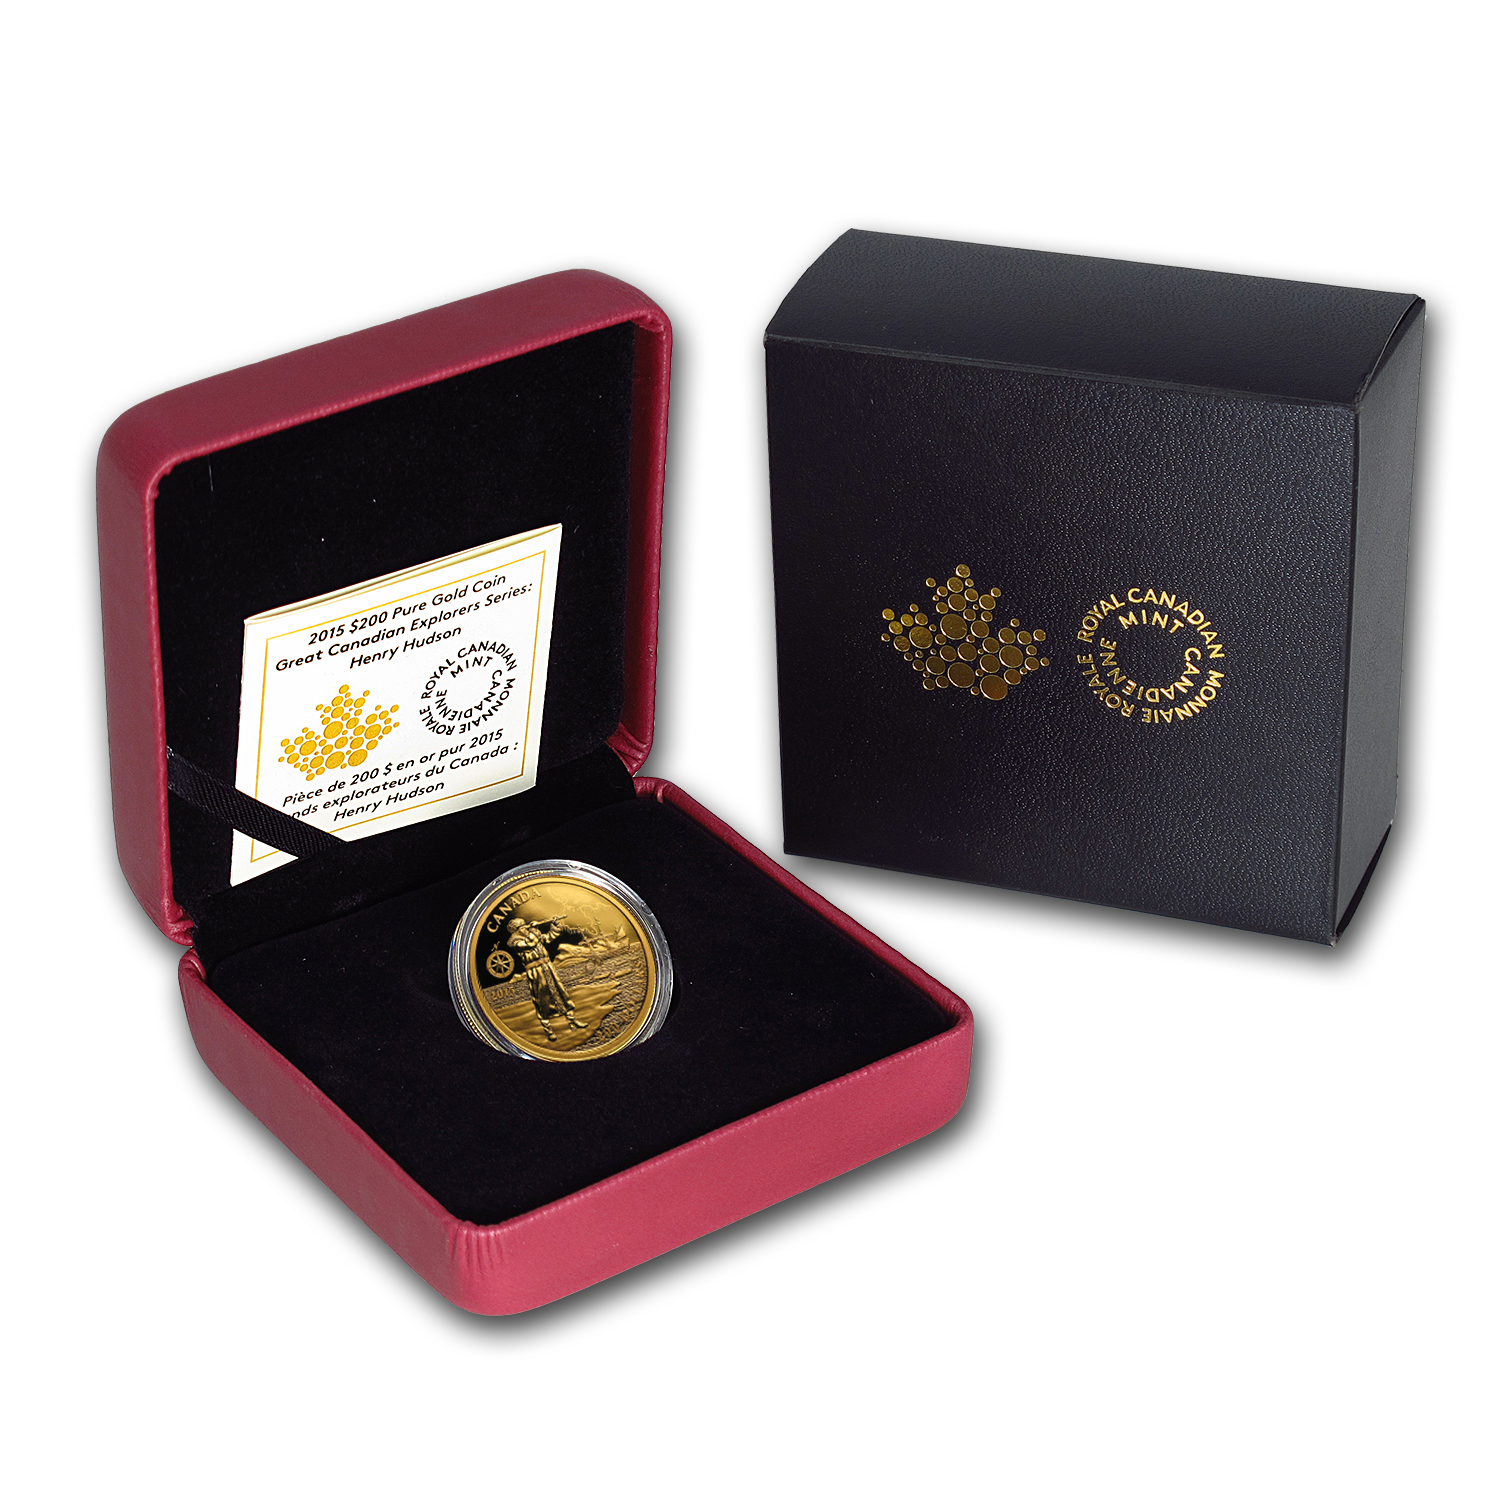 2015 Canada Proof Gold $200 Canadian Explorers Henry Hudson